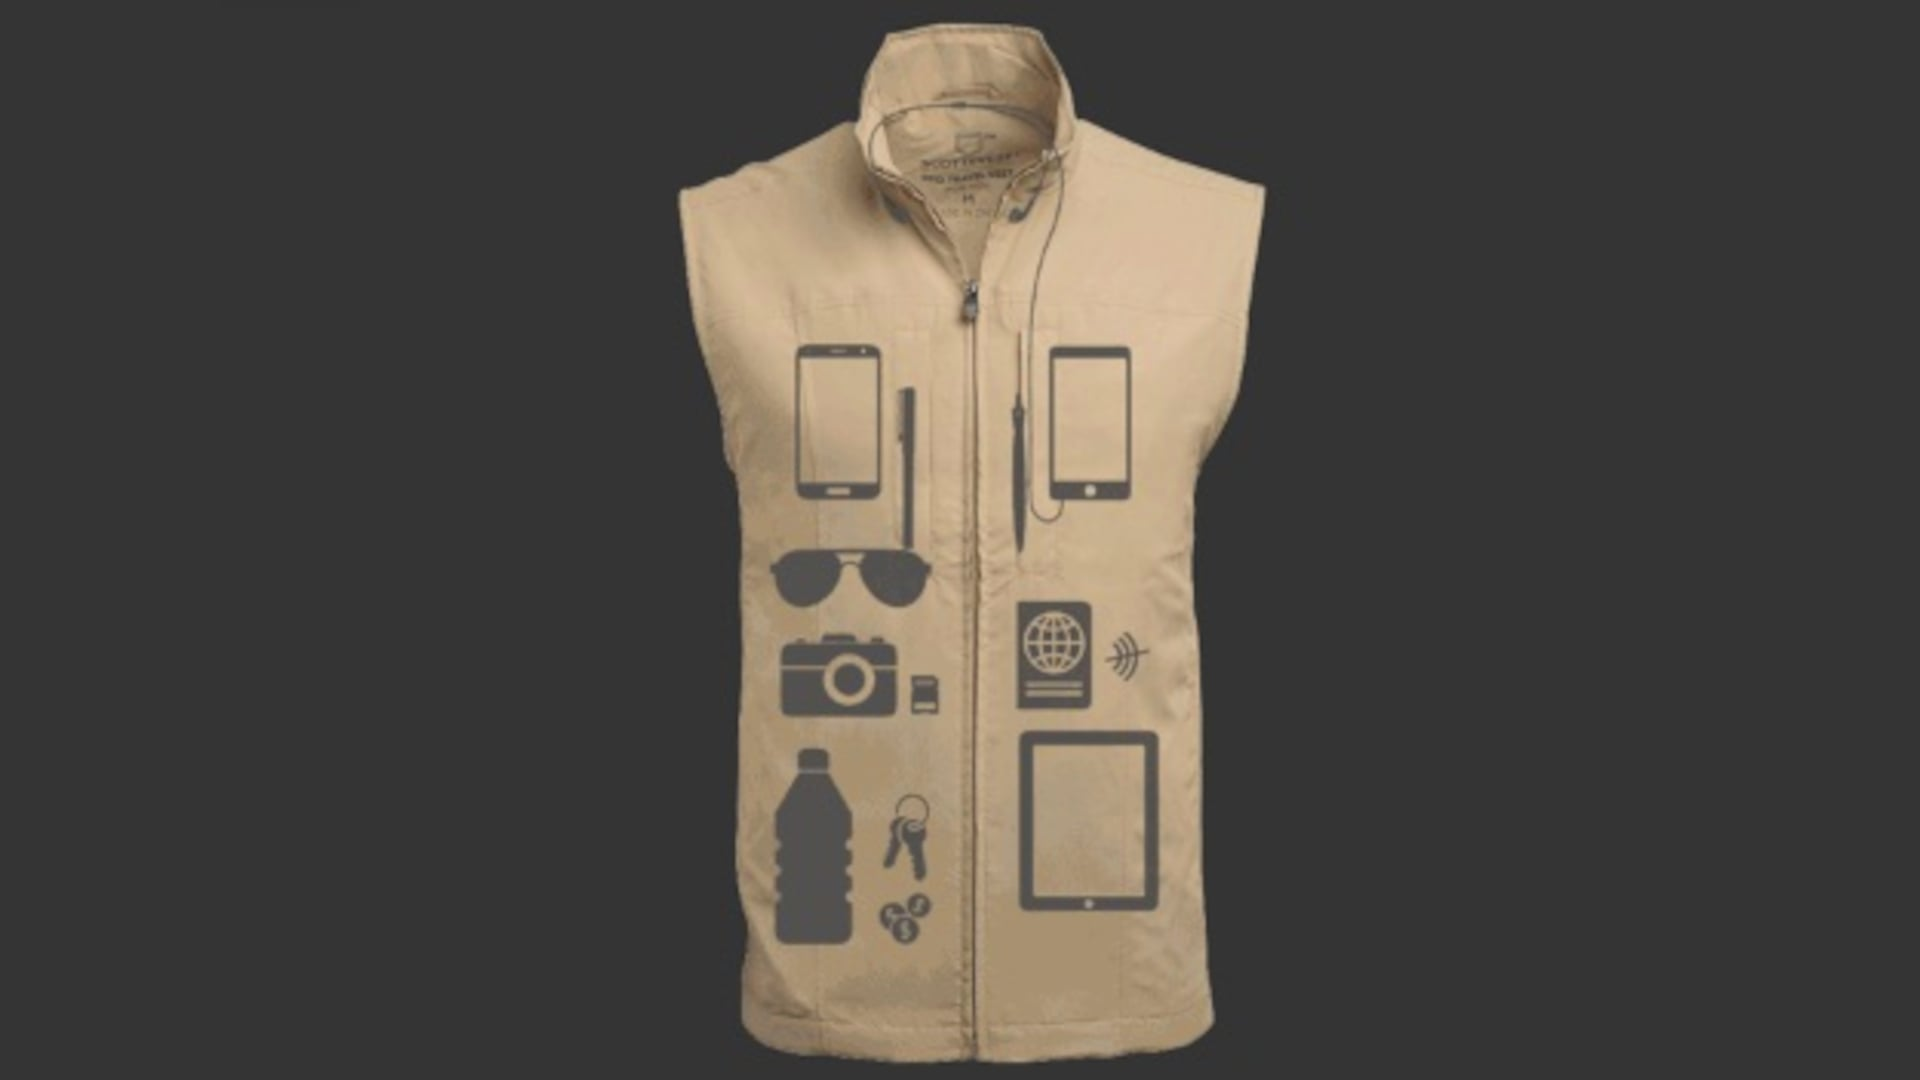 ScotteVest Products Review